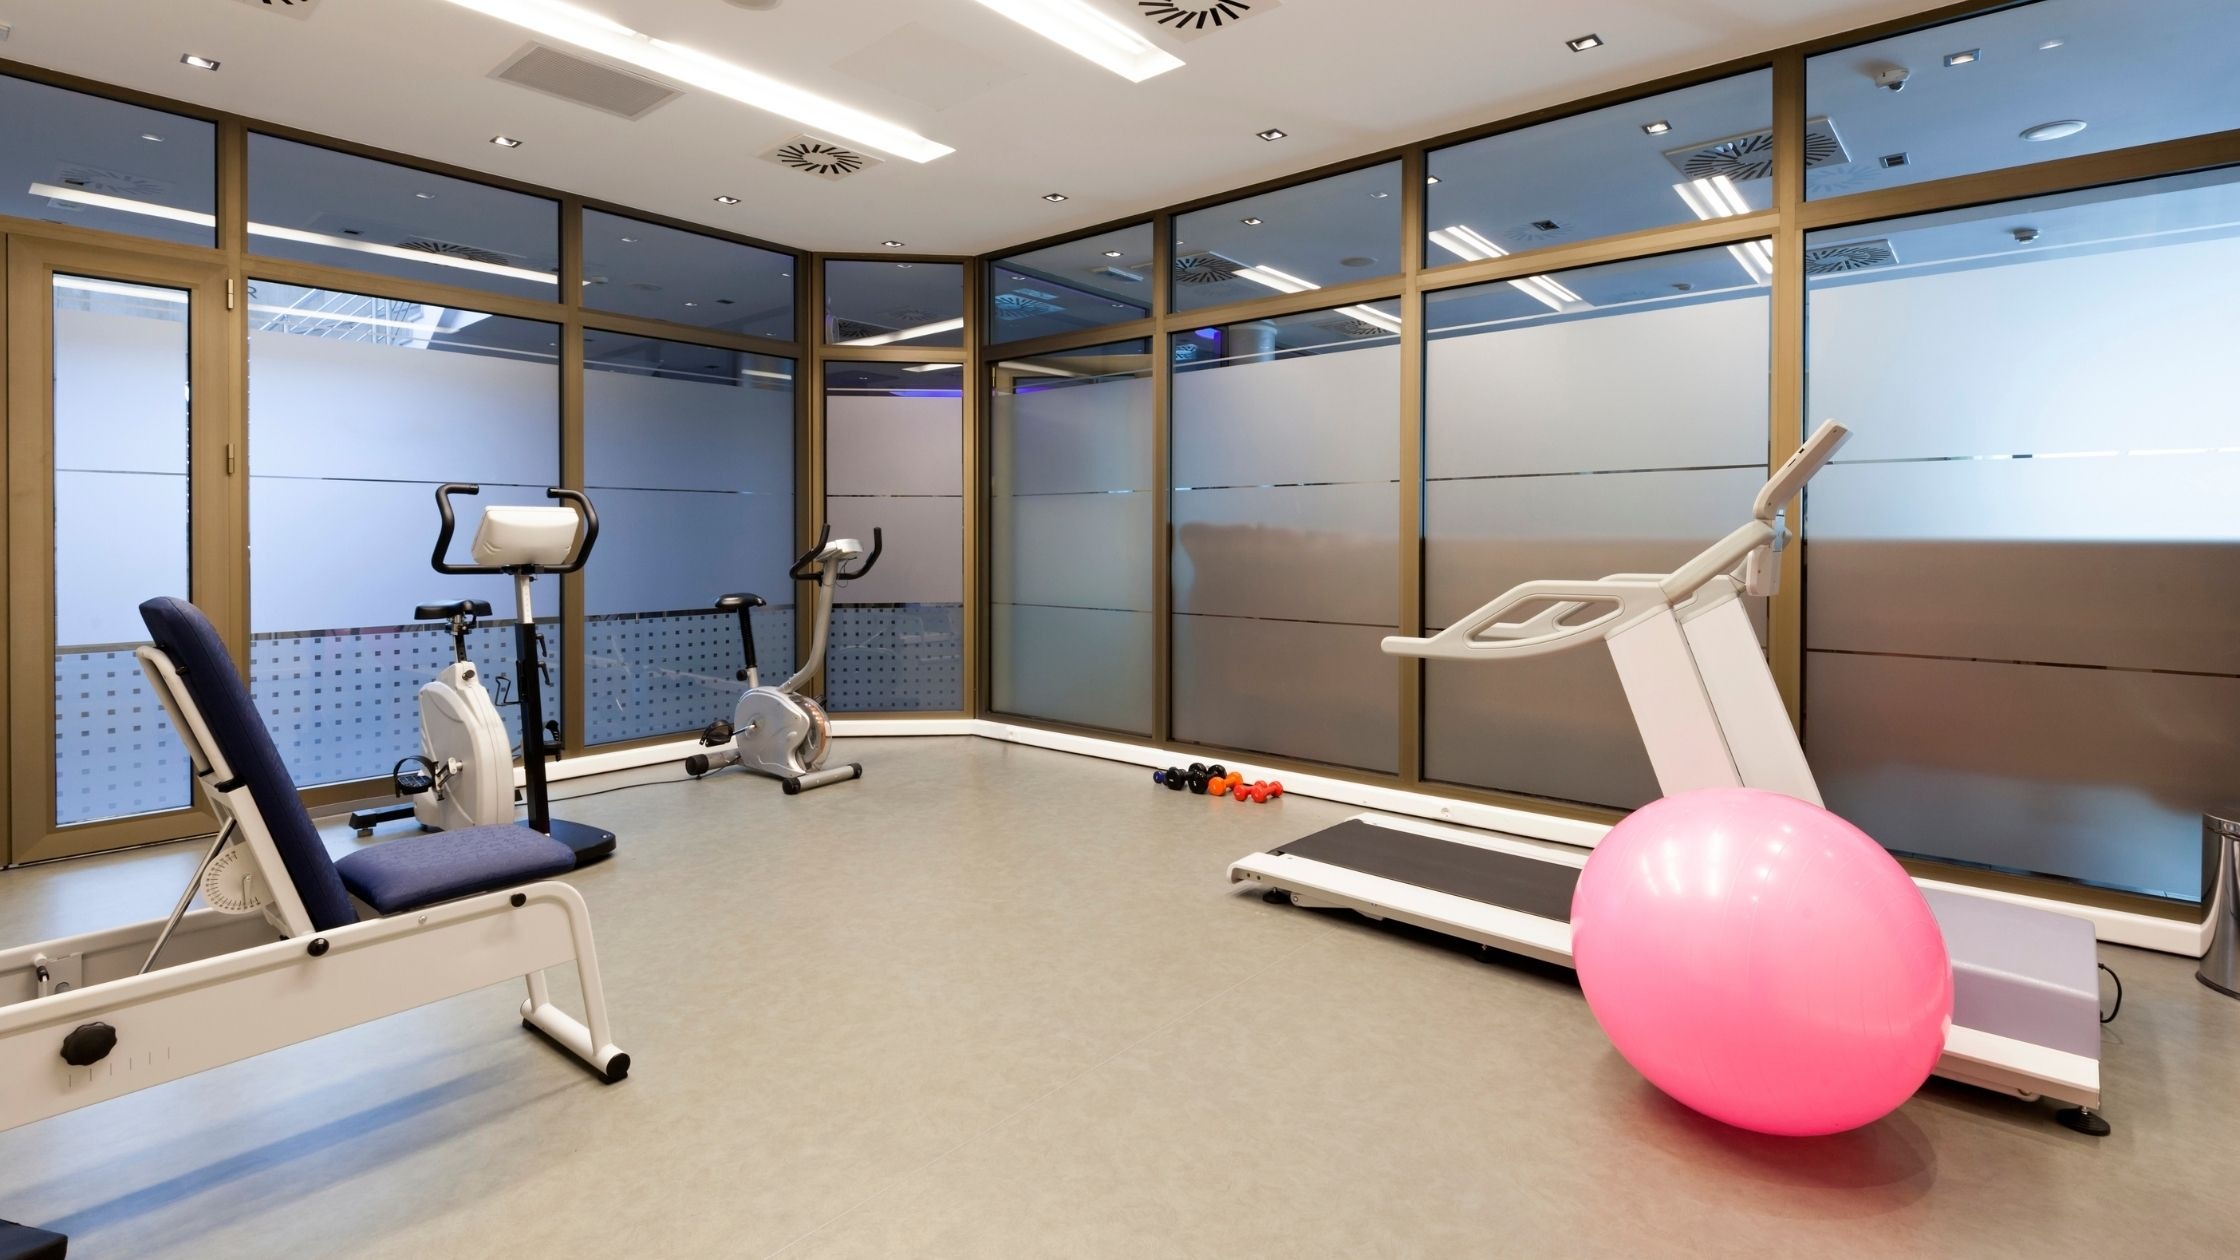 types of gyms: boutique gym